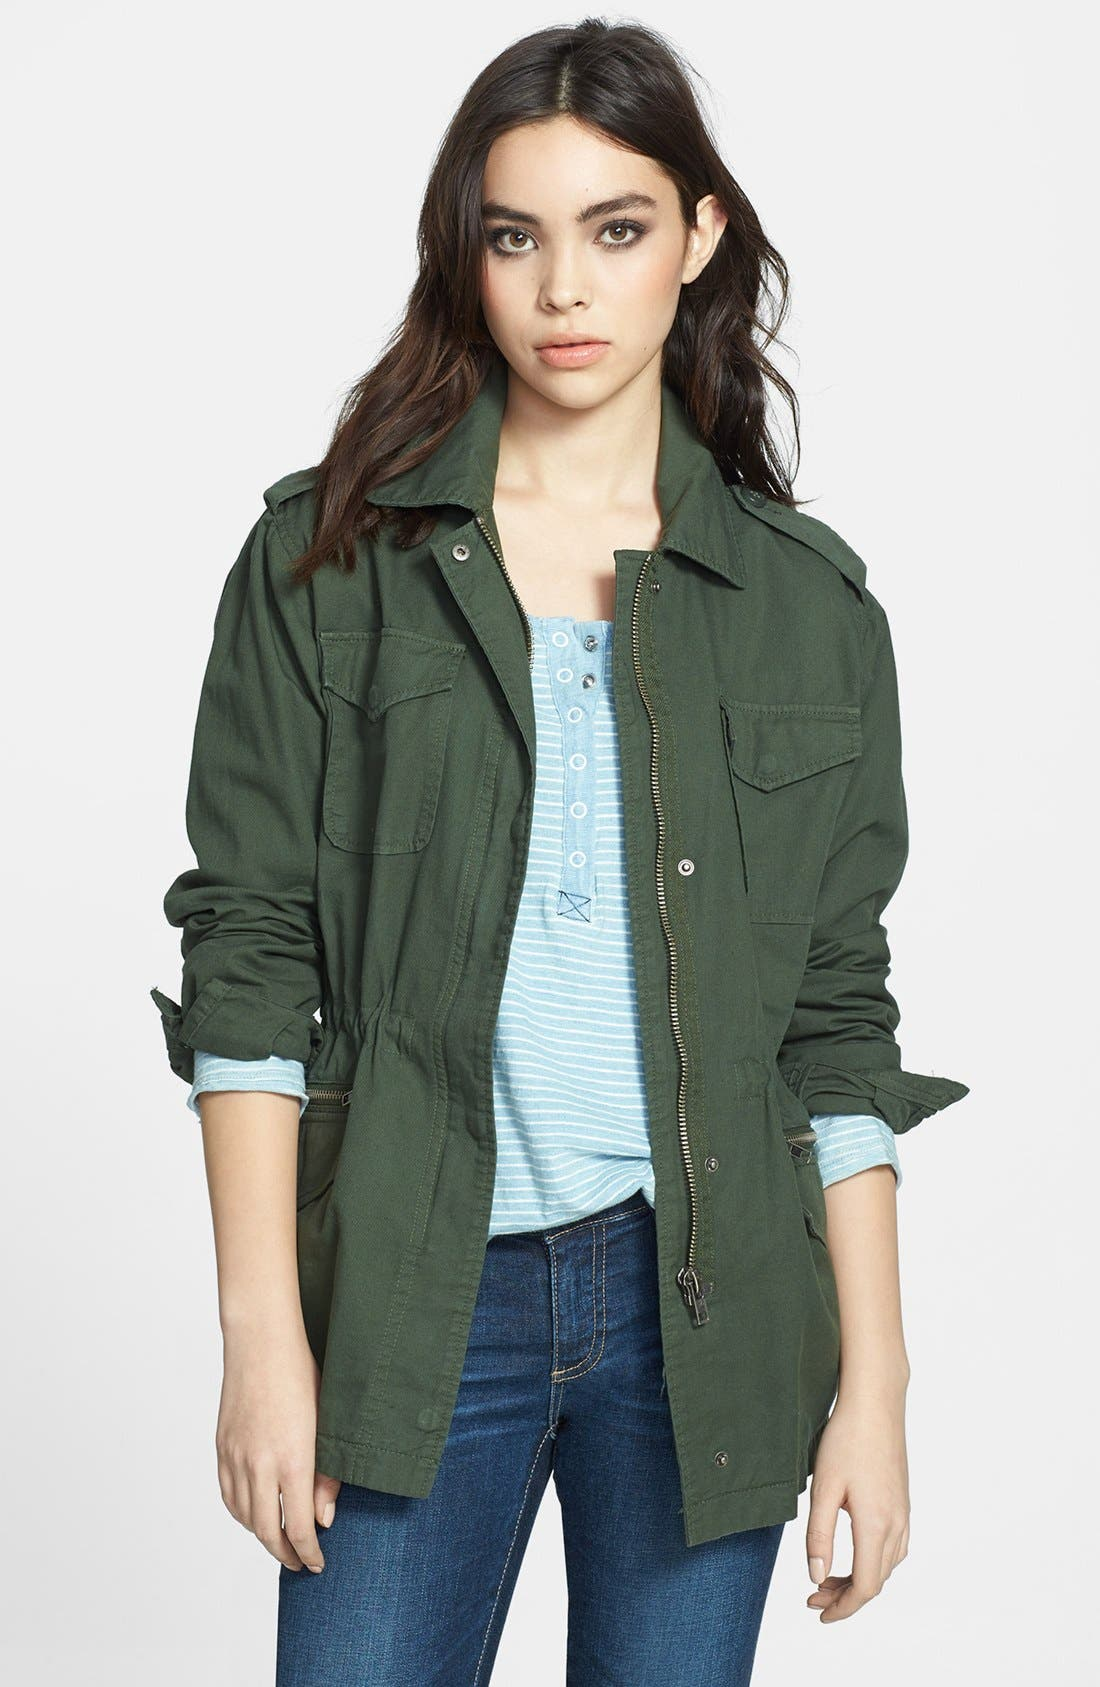 Alternate Image 1 Selected - BB Dakota 'Monrovia' Cotton Twill Army Jacket